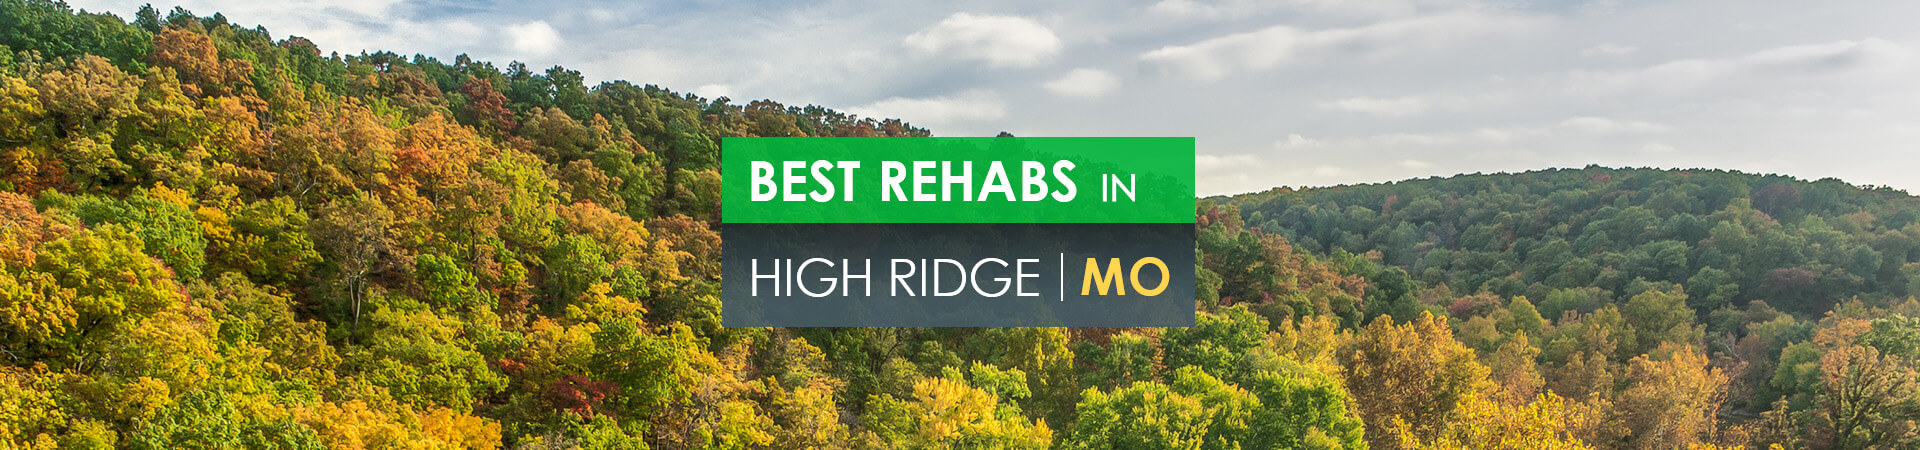 Best rehabs in High Ridge, MO